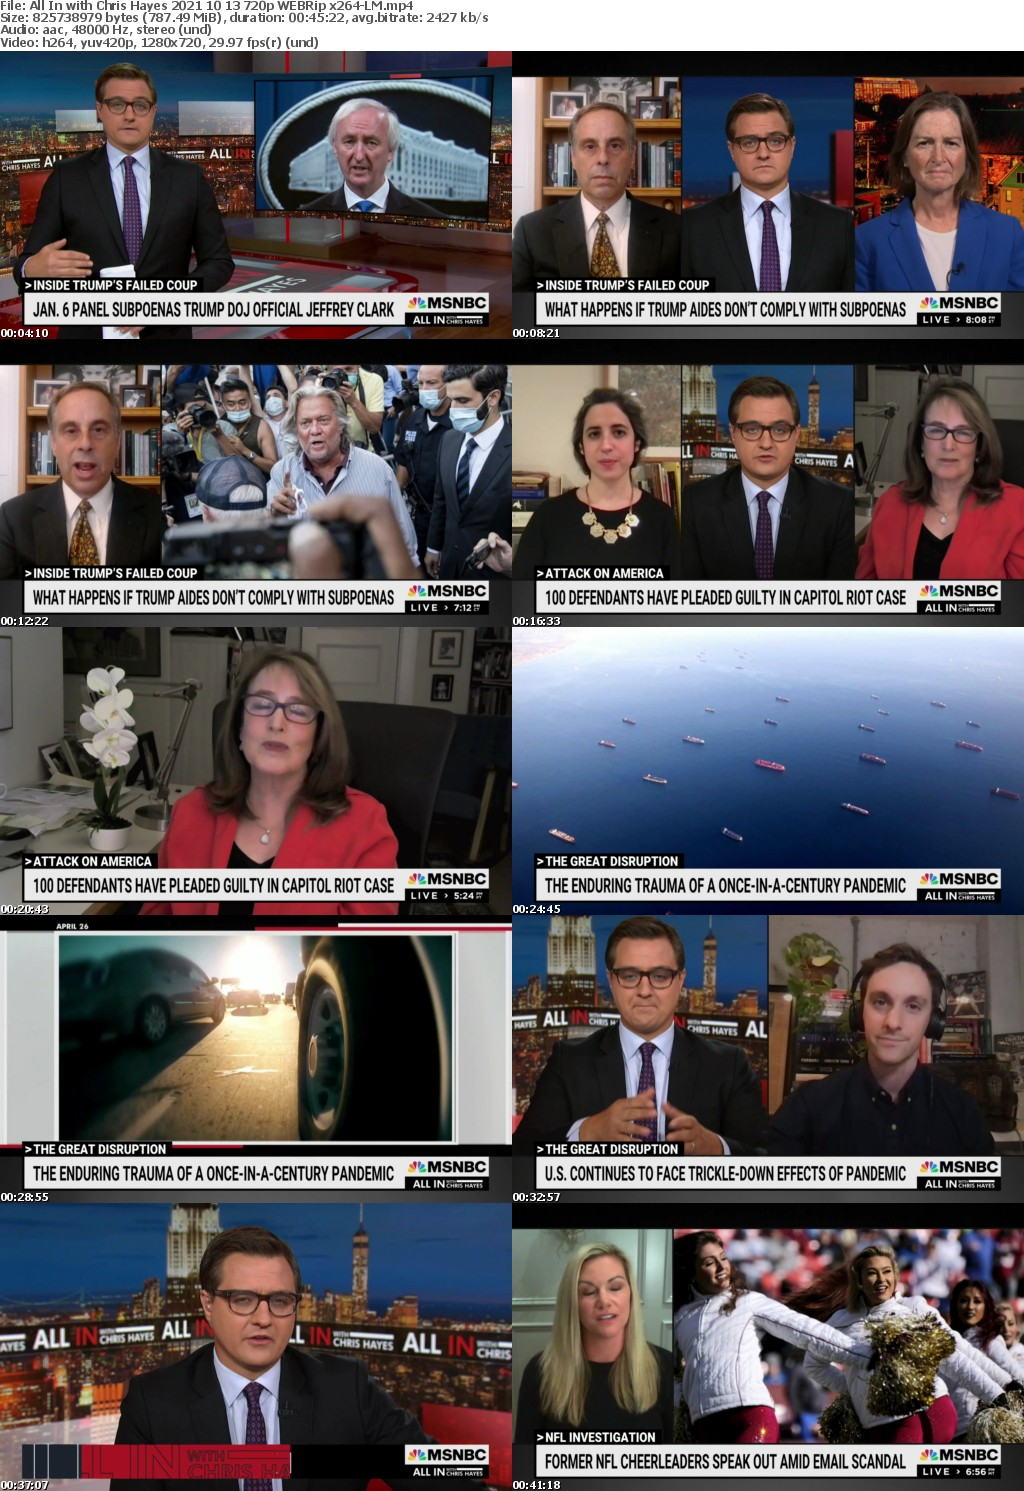 All In with Chris Hayes 2021 10 13 720p WEBRip x264-LM